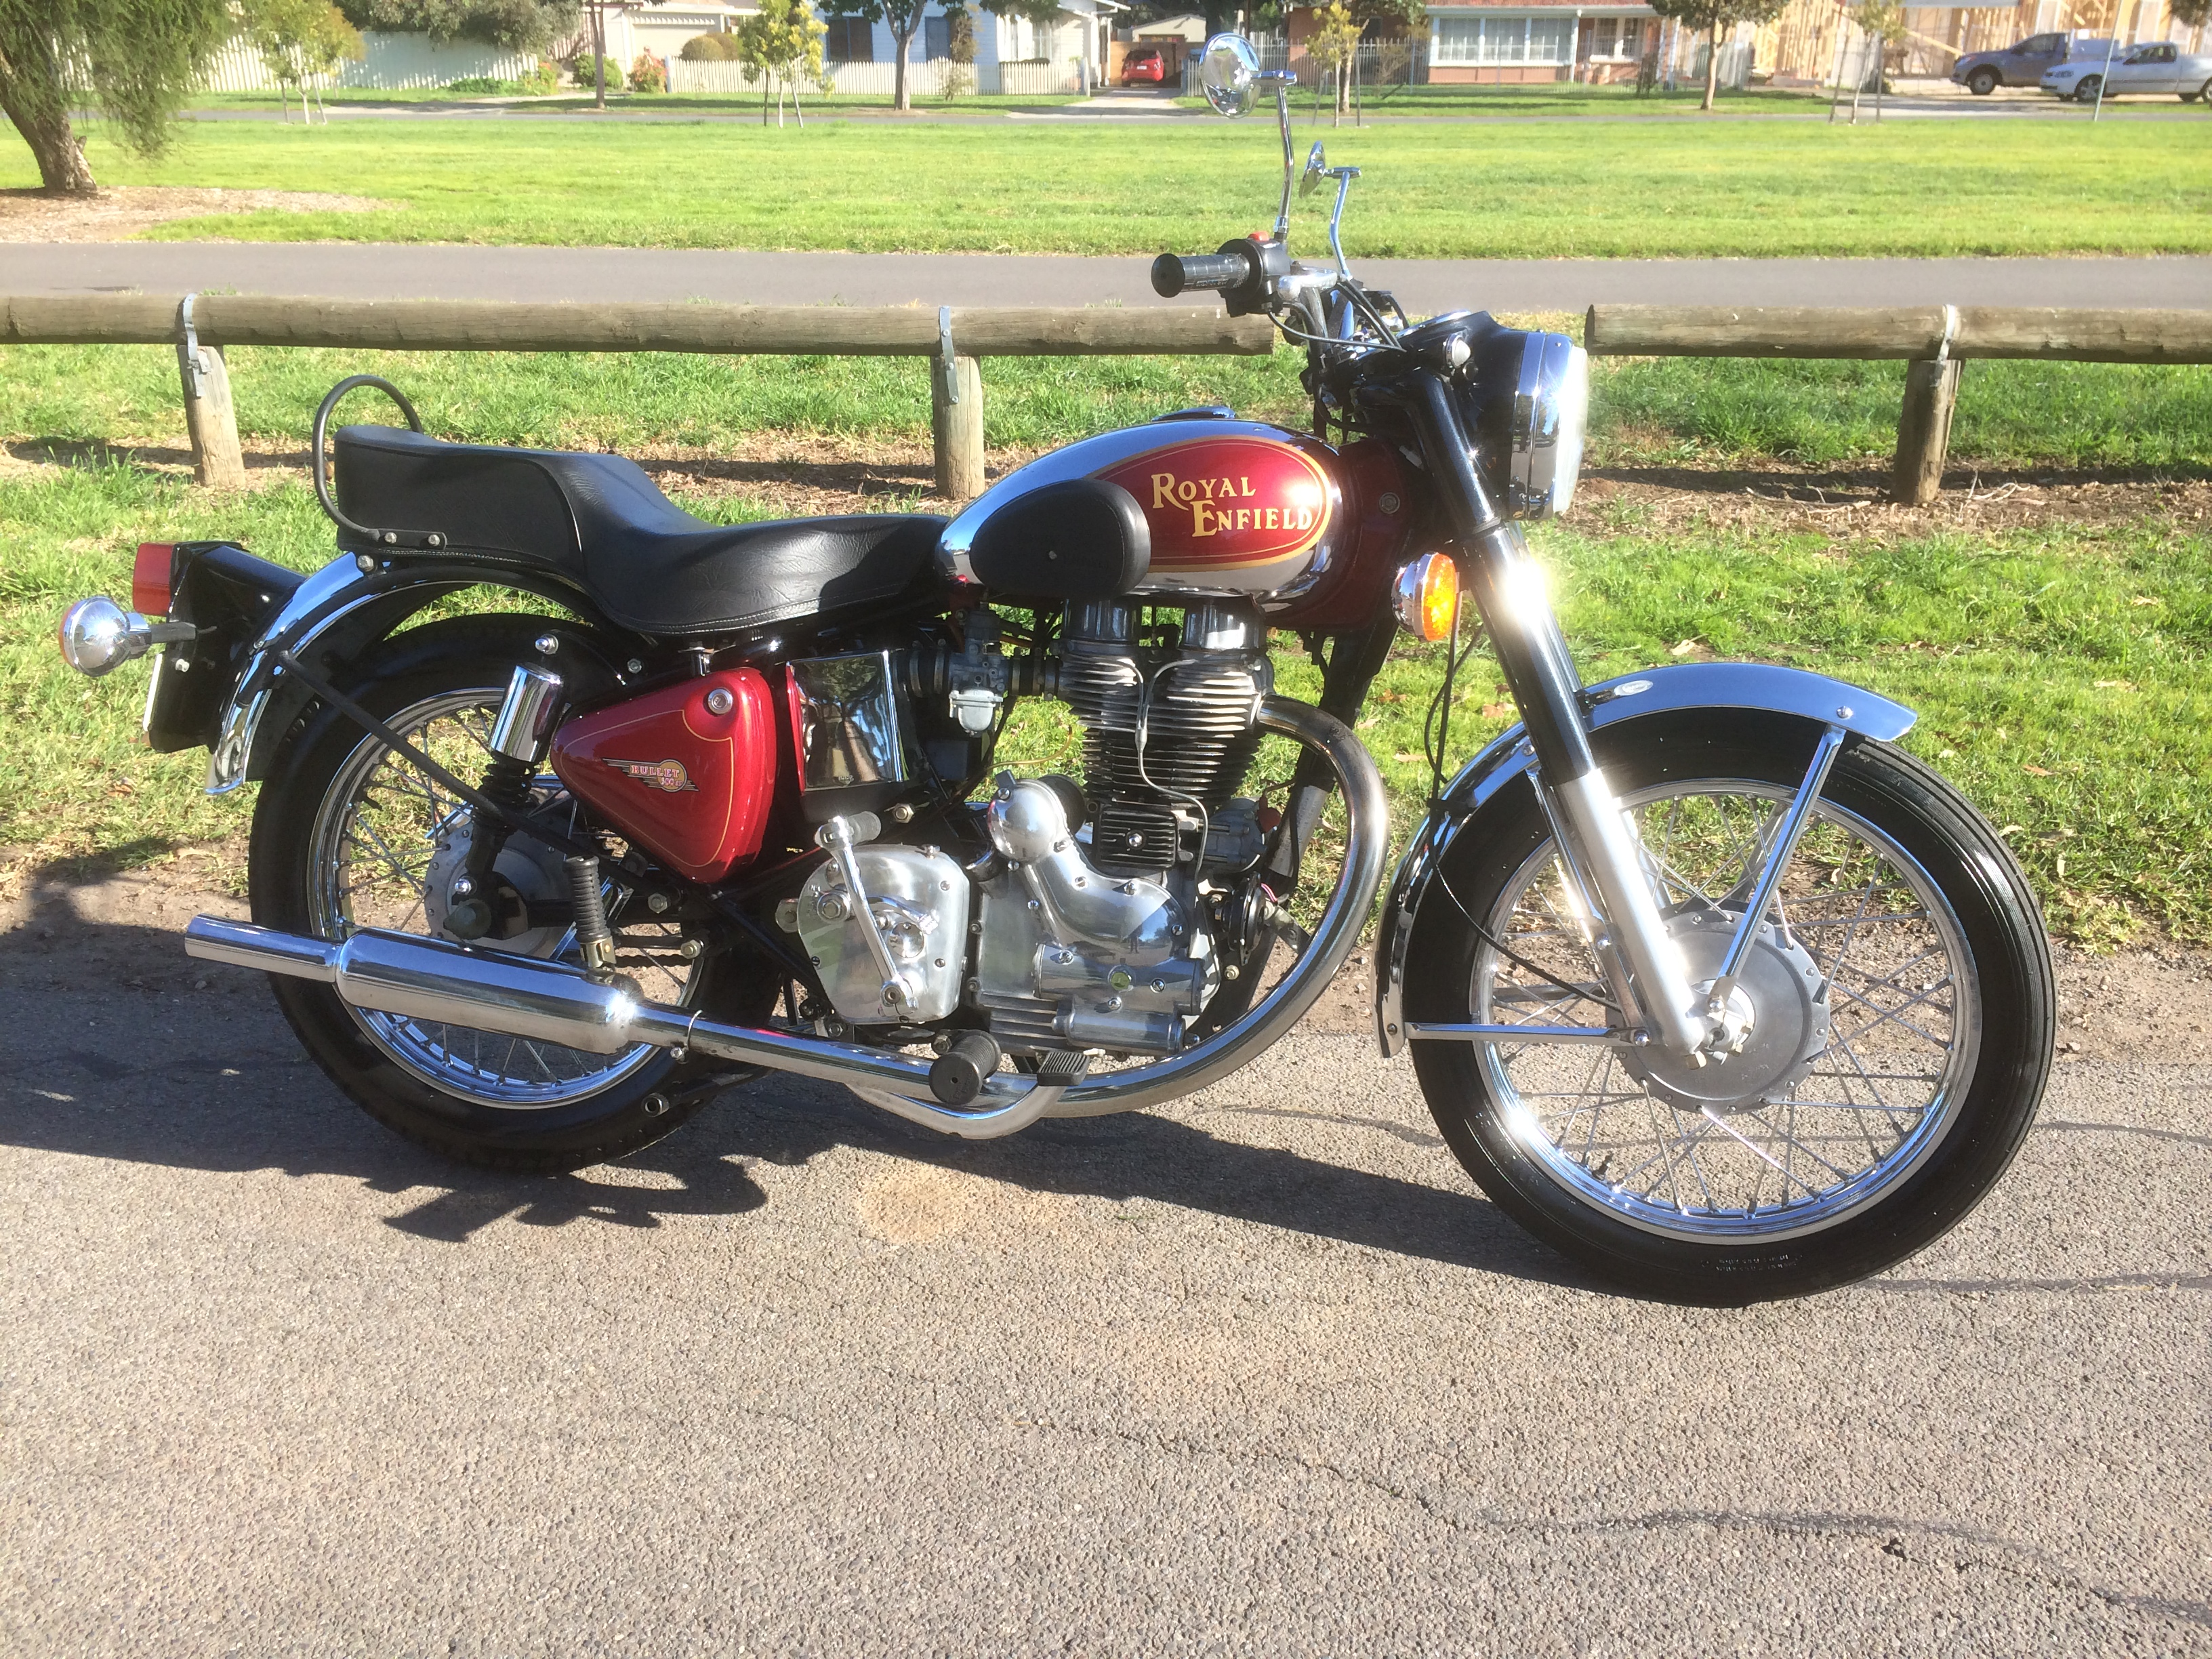 Royal Enfield Bullet 500 Army 1995 images #122800